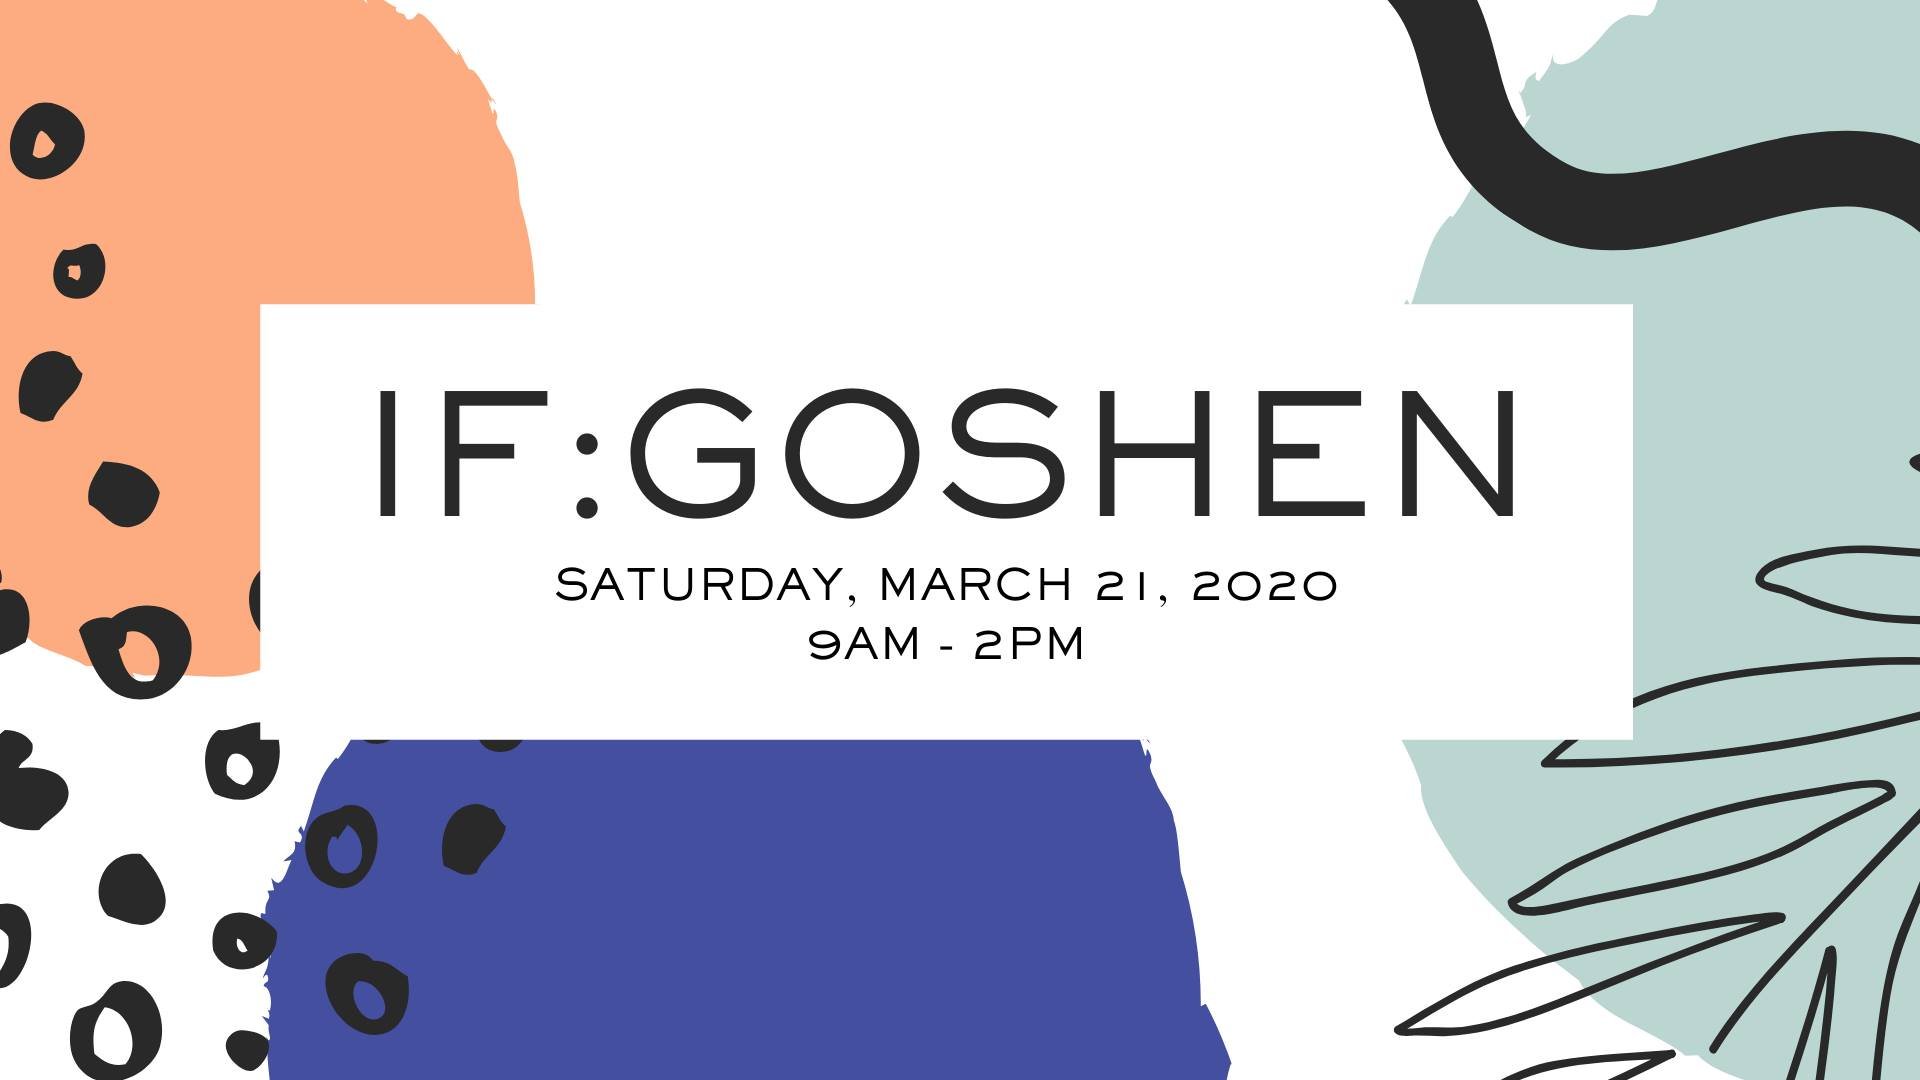 Women's Conference IF:Gathering - March 21st